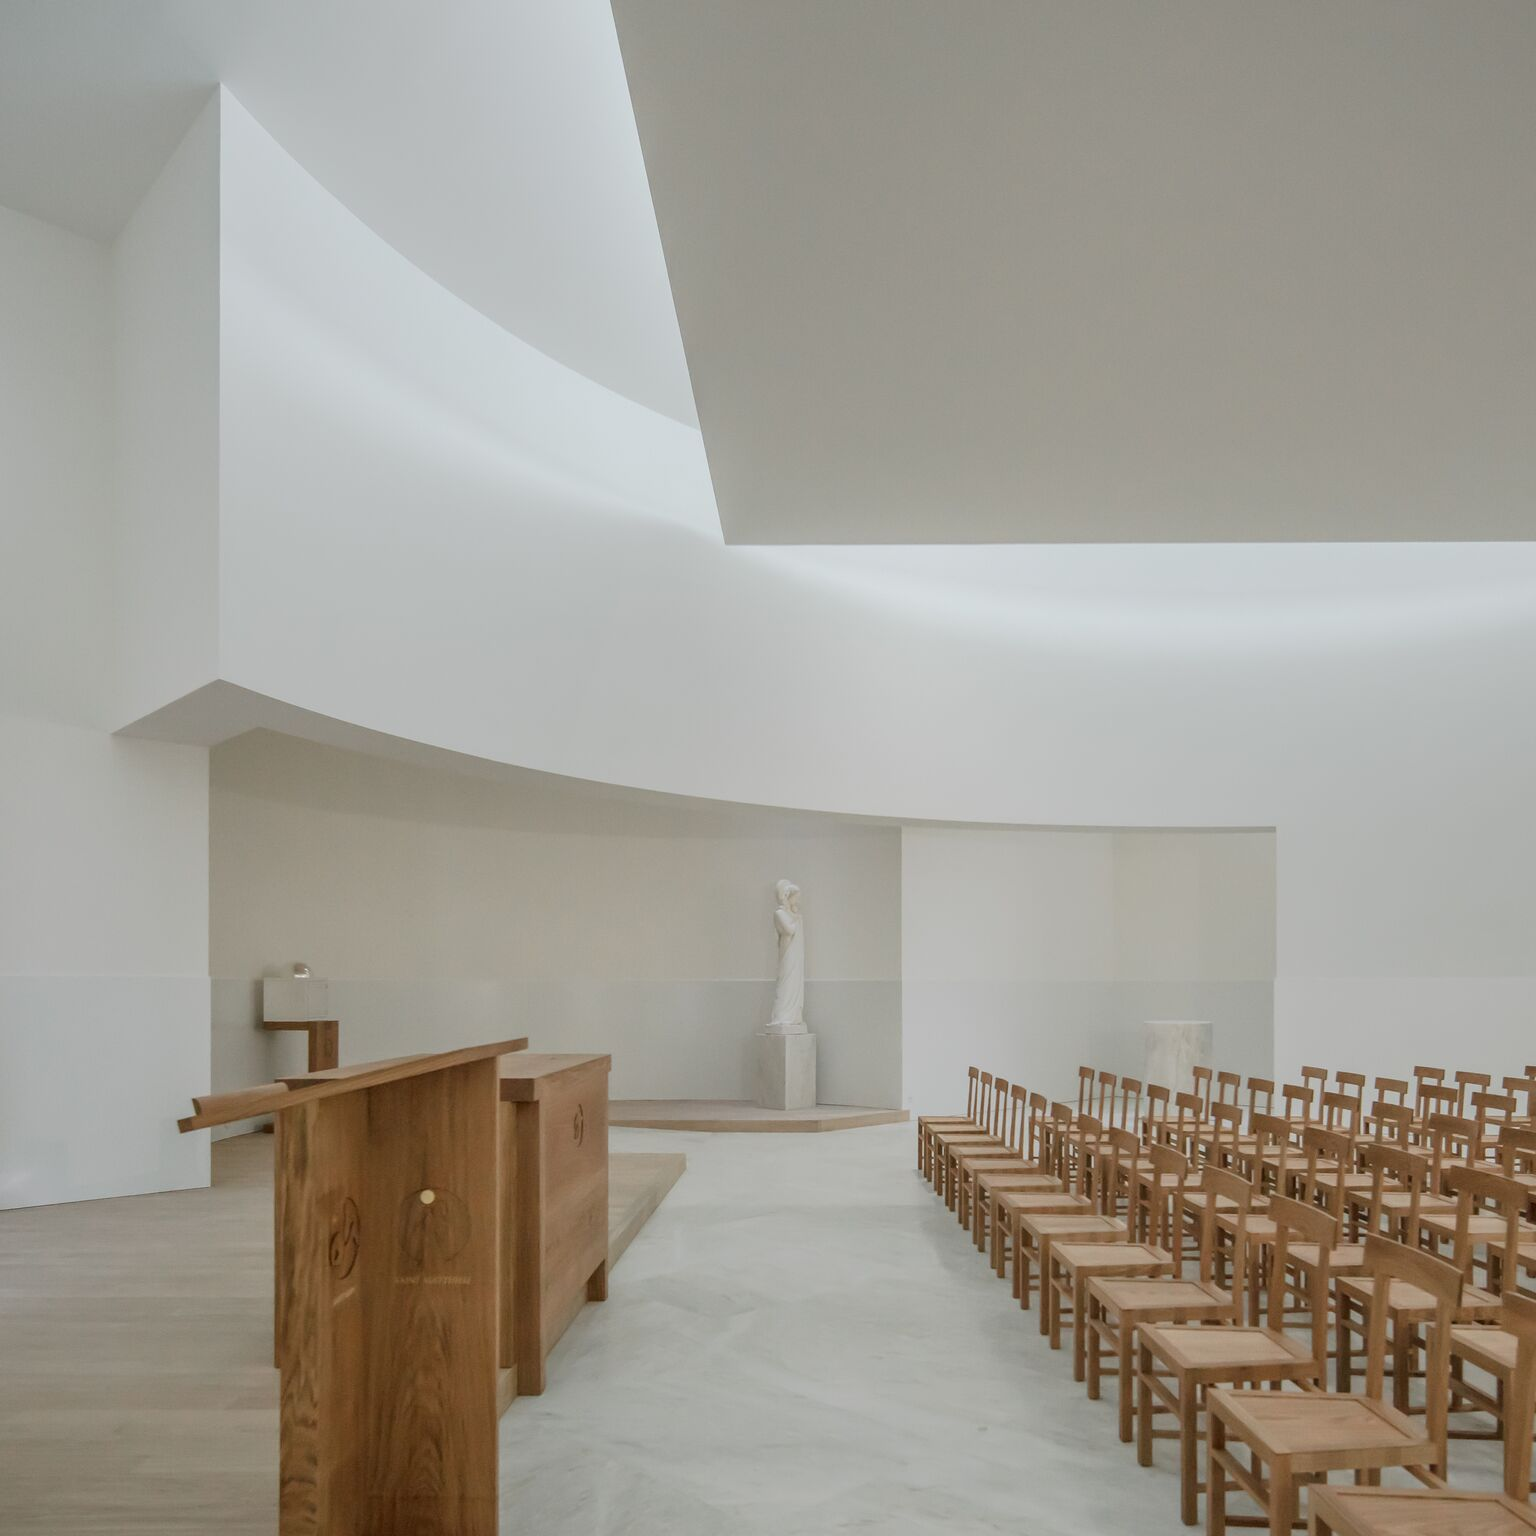 10_Alvaro Siza Vieira_New Church of Saint-Jacques de la Lande_Inspirationist